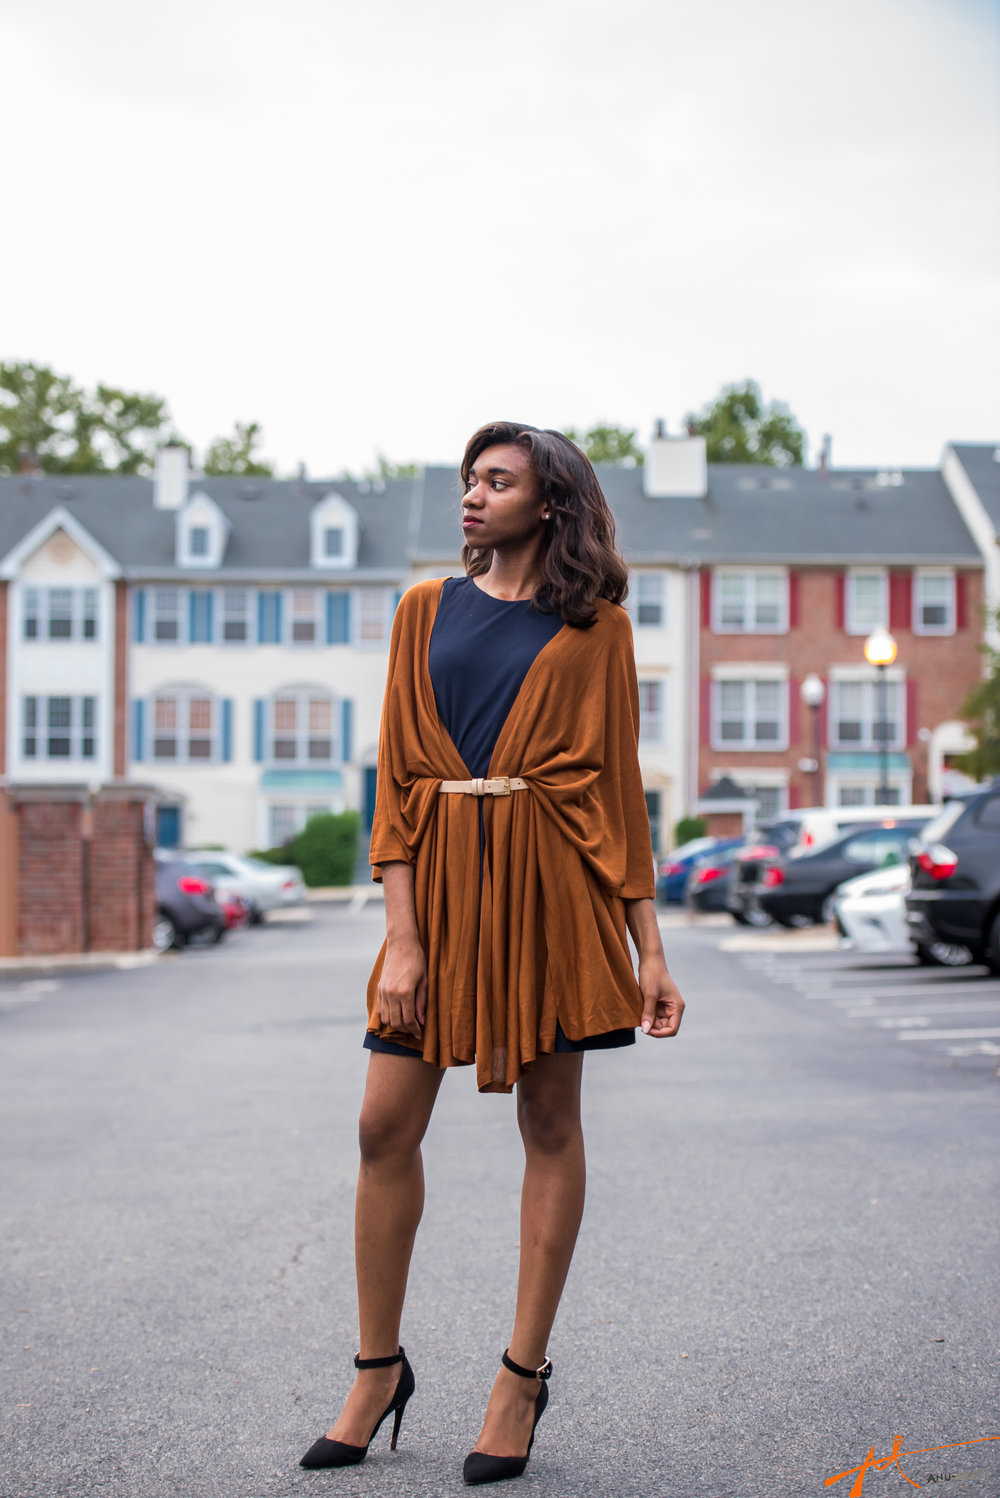 Styling a dress and belted cardigan for fall. See Memkoh x MemkohMen 2 for full post.